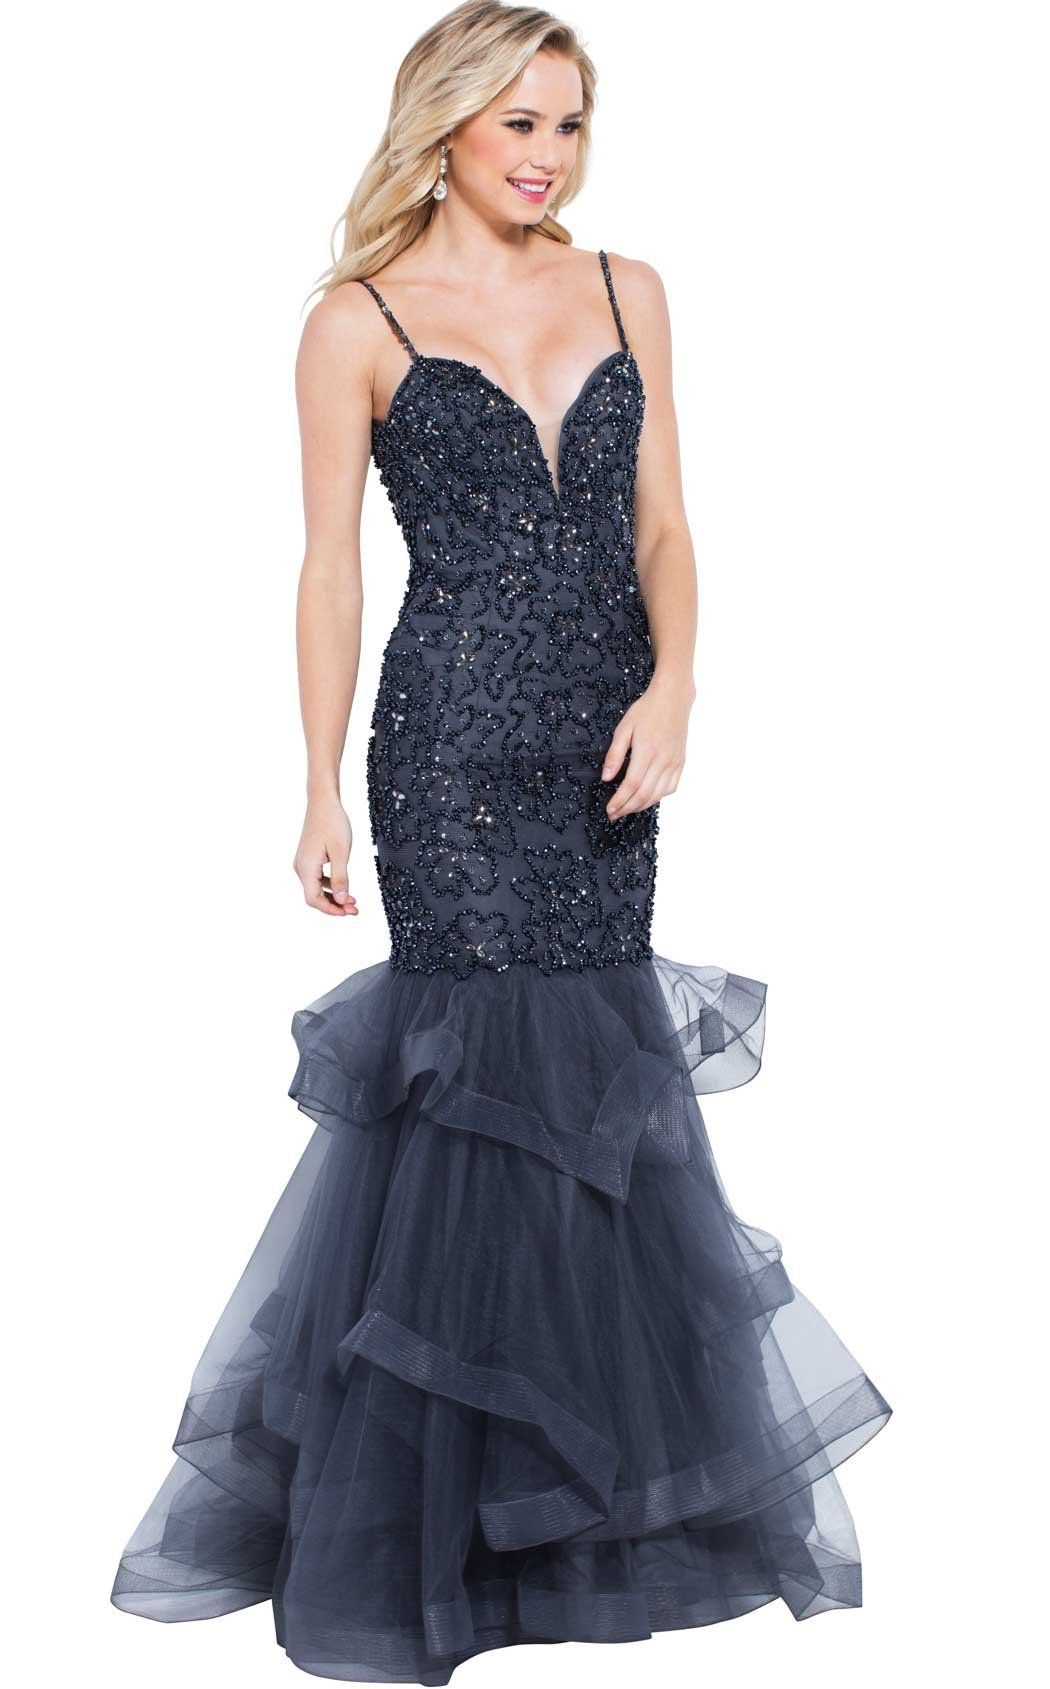 Where To Donate Prom Dresses In Louisville Ky Ficts